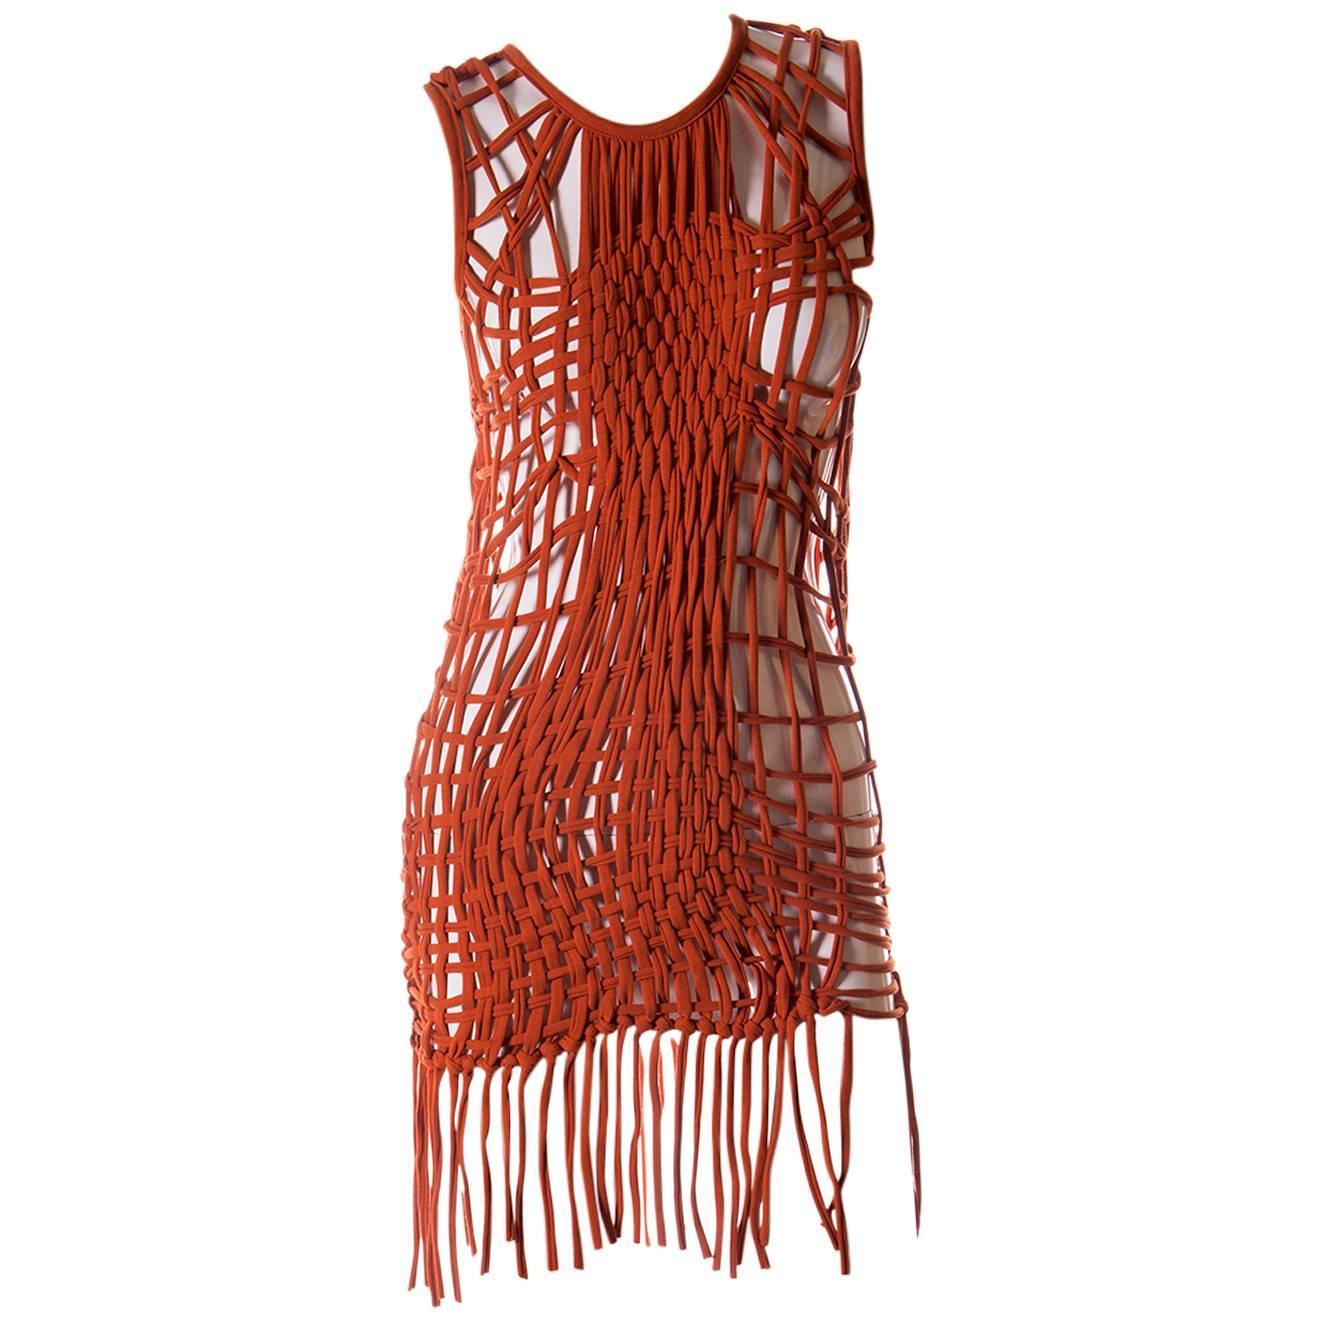 macrame dresses jean paul gaultier macrame fringe dress at 1stdibs 591